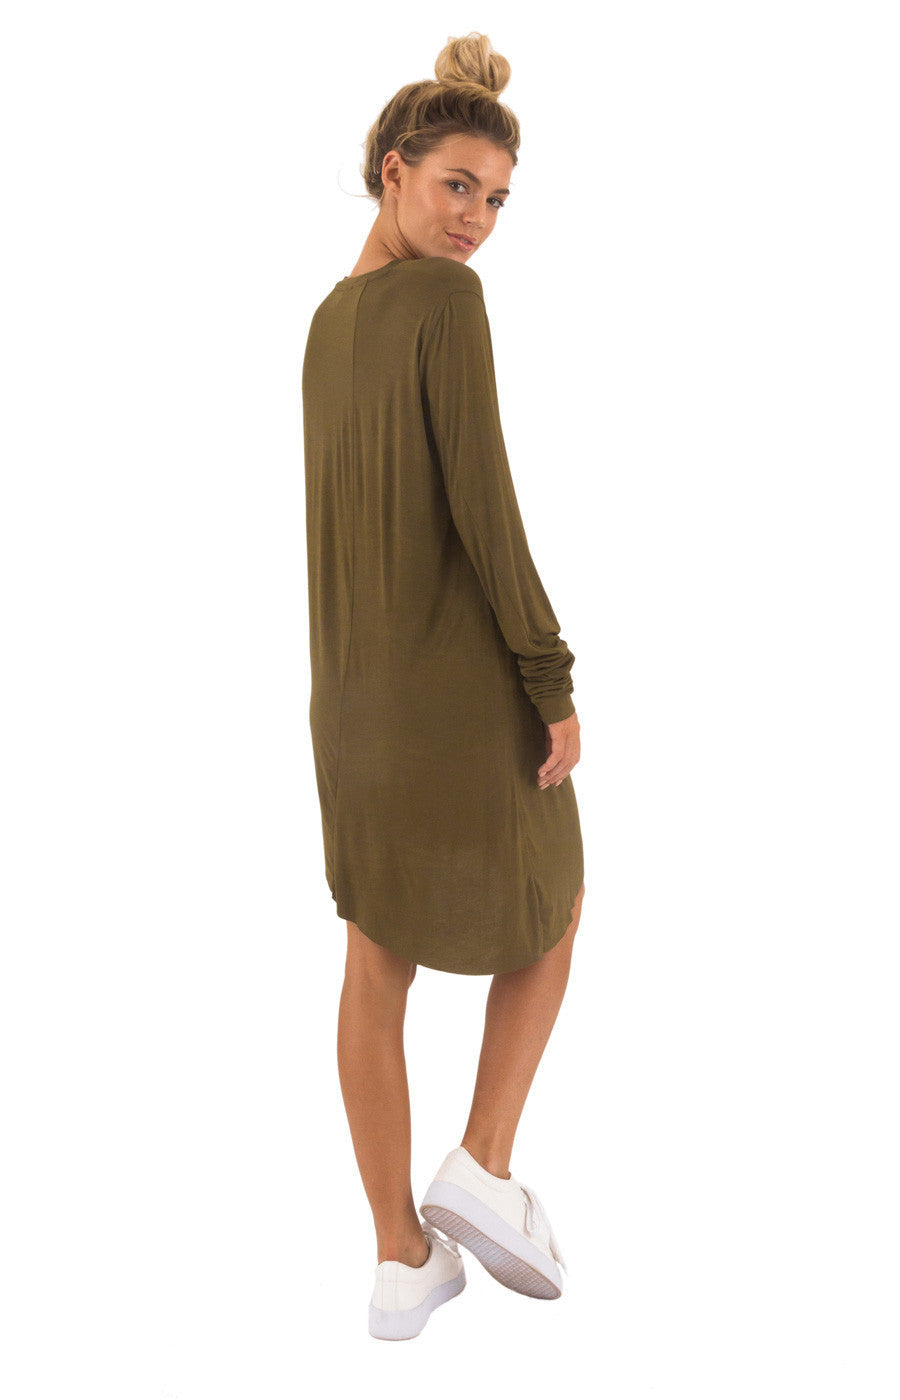 The Bare Road Raw Dress Olive